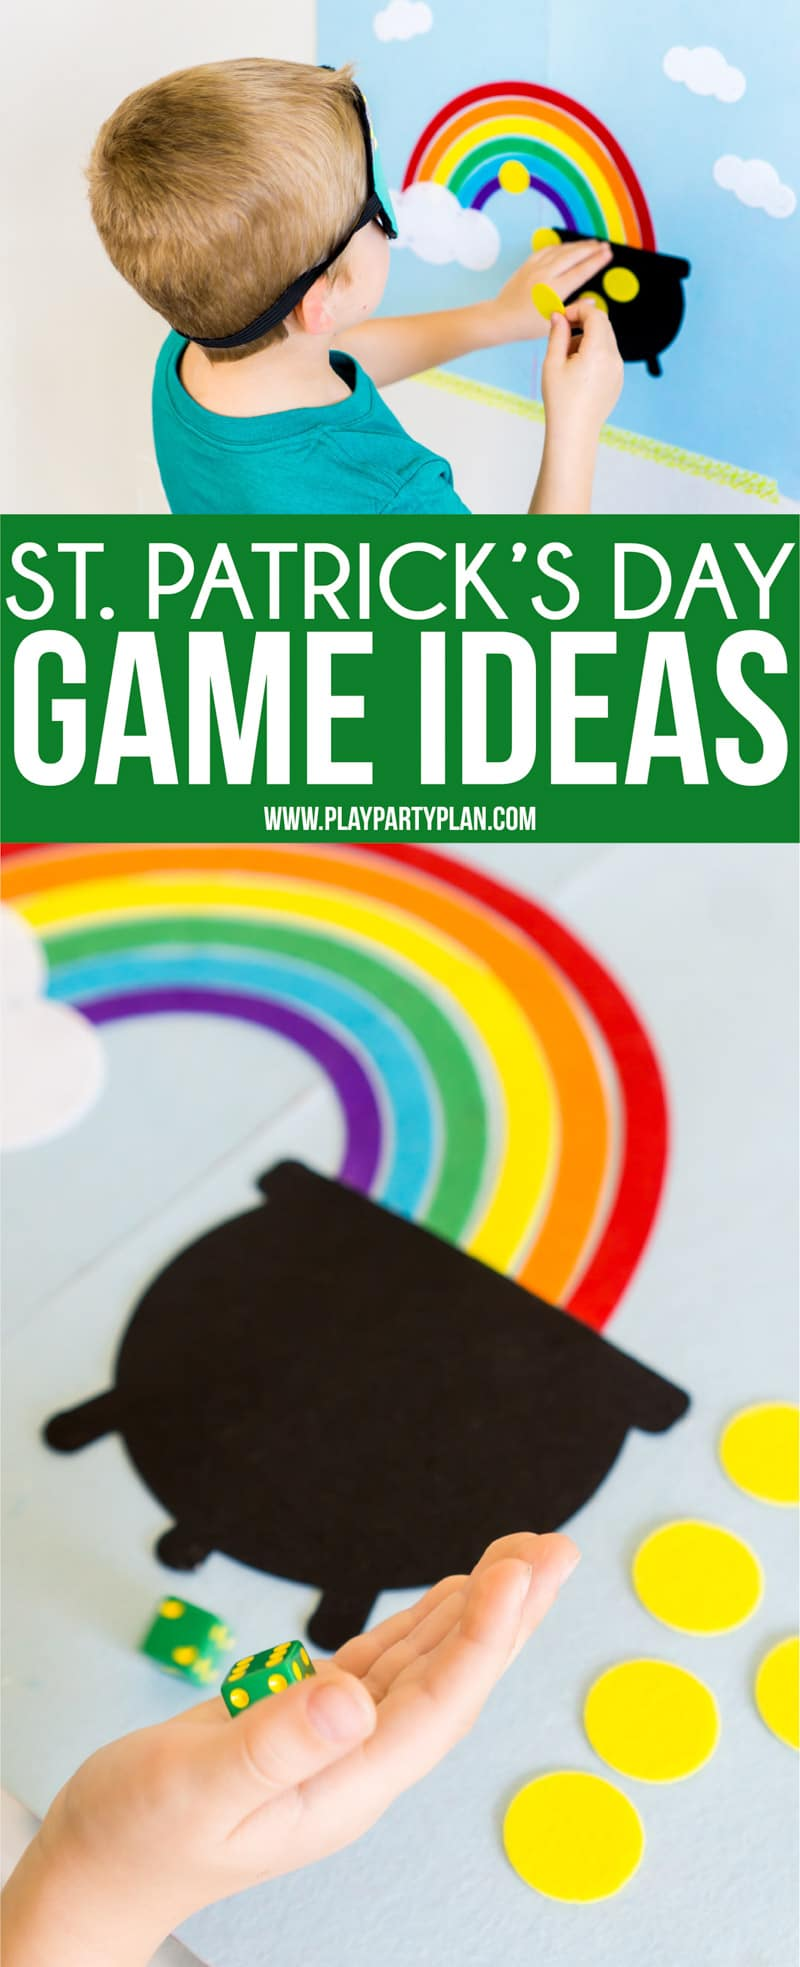 Two DIY St. Patrick's Day games that work great for kids or for adults! Great activities if you're looking for ideas to do in the classroom or even if you want crafts for kids to do on St. Patrick's Day - have them make the games! #StPatricksDay #kidsgames #partygames #CricutMaker